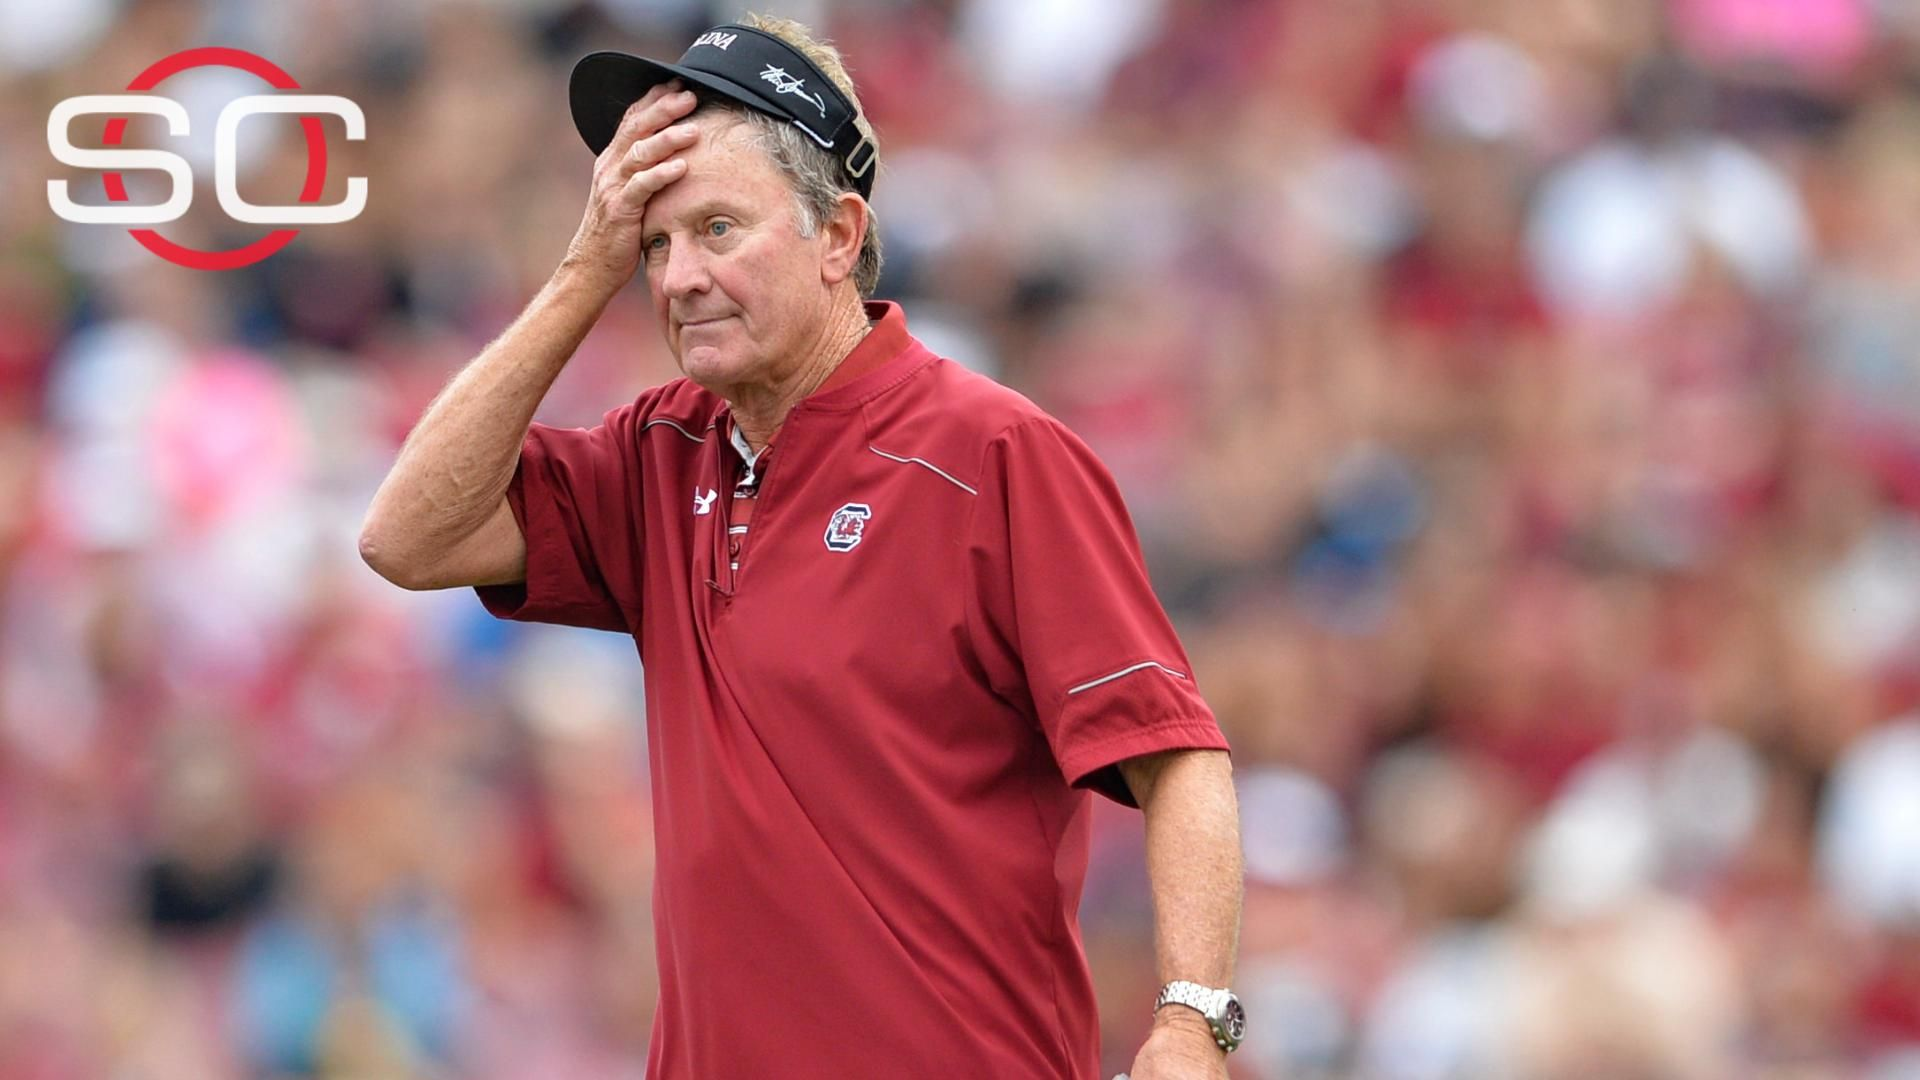 Why is Spurrier retiring?